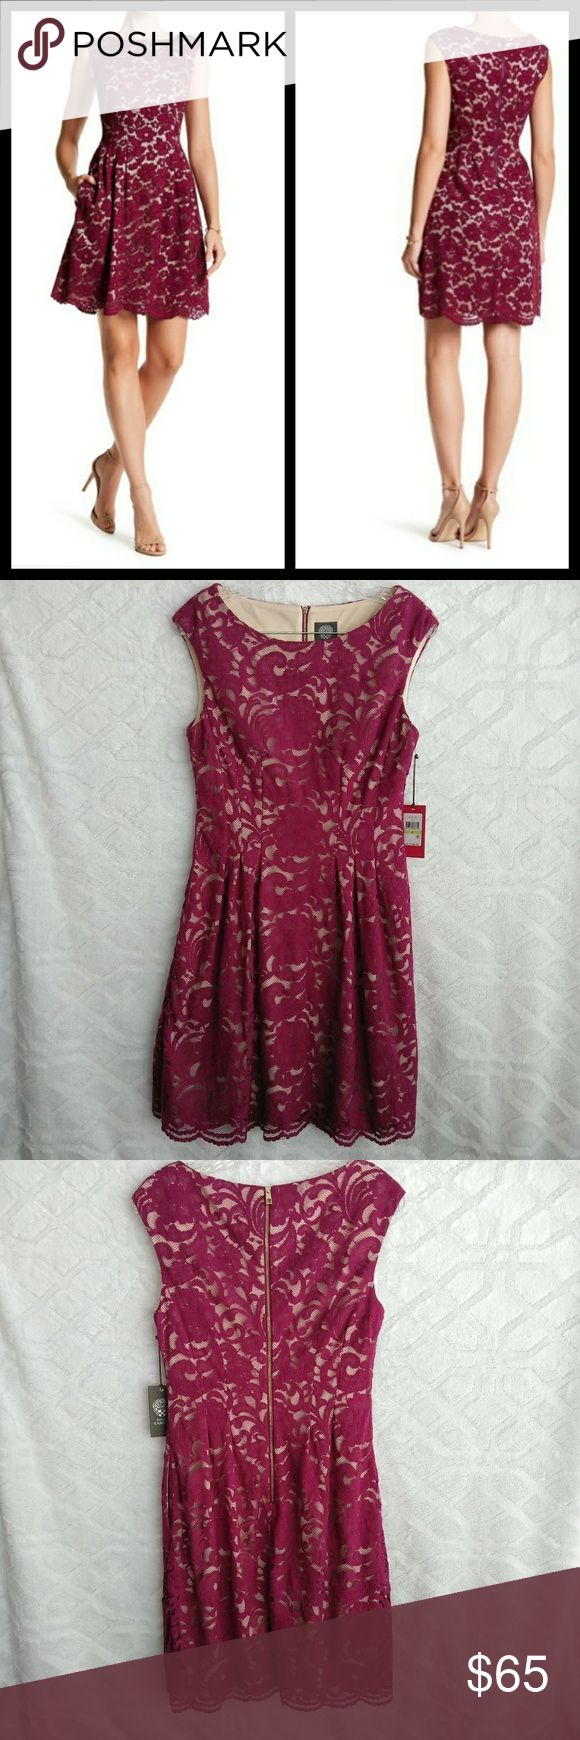 """Vince Camuto lace flare dress. New with tags lace flare dress with side pockets. Boat neck- back zip closure, cap sleeves. Lined.  Bust 17"""" Waist 15"""" Lenght 36""""  Approximately measurements with item laying flat. Vince Camuto Dresses Mini"""